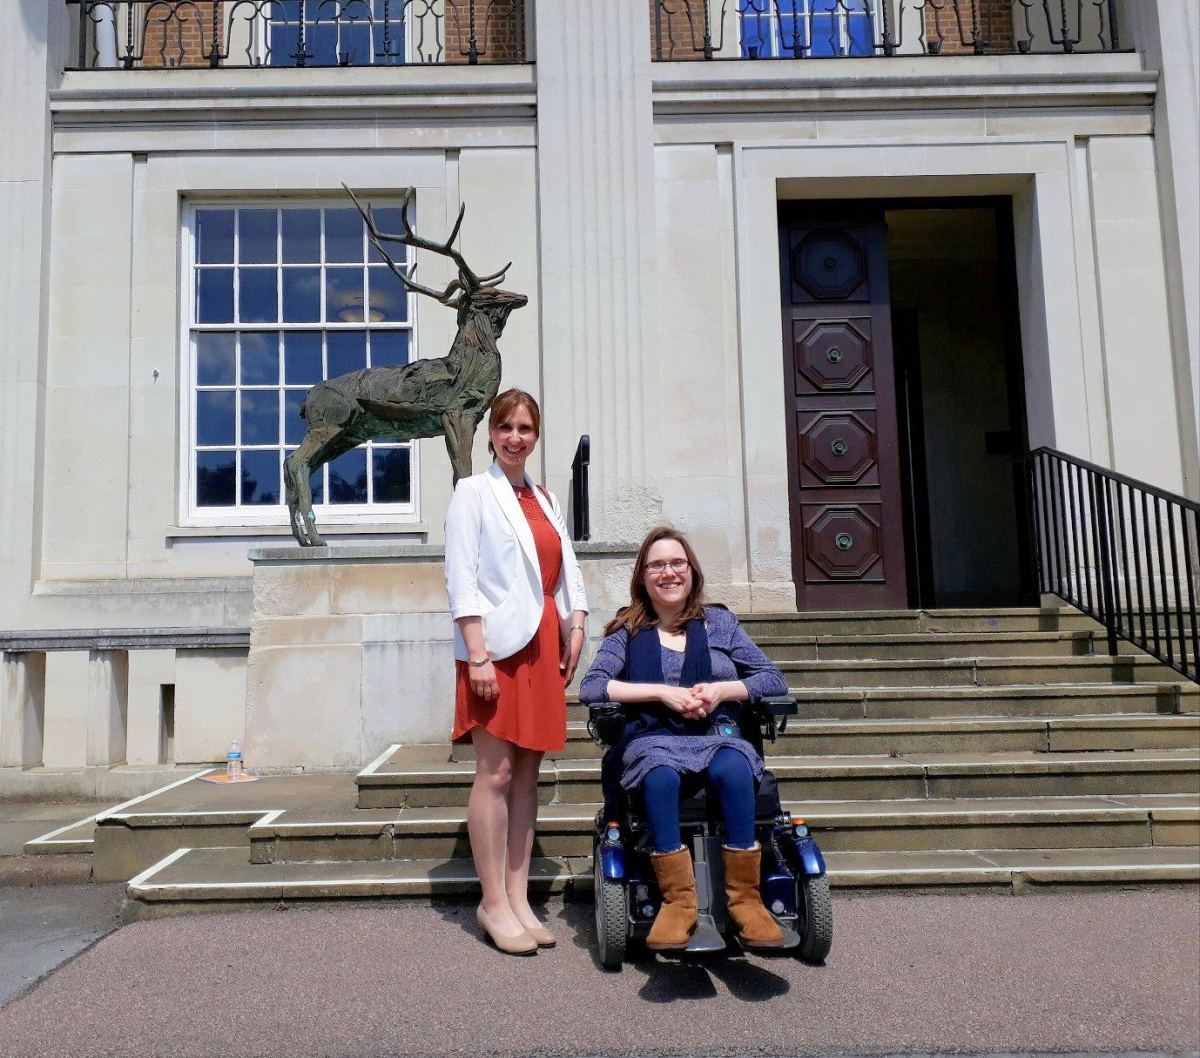 From Left to Right Anna Denham, Research and Engagement Officer for I Can Make It and Bethany Young, Champion for I Can Make It Hertfordshire, in Front of County Hall on Tuesday the 13th of June